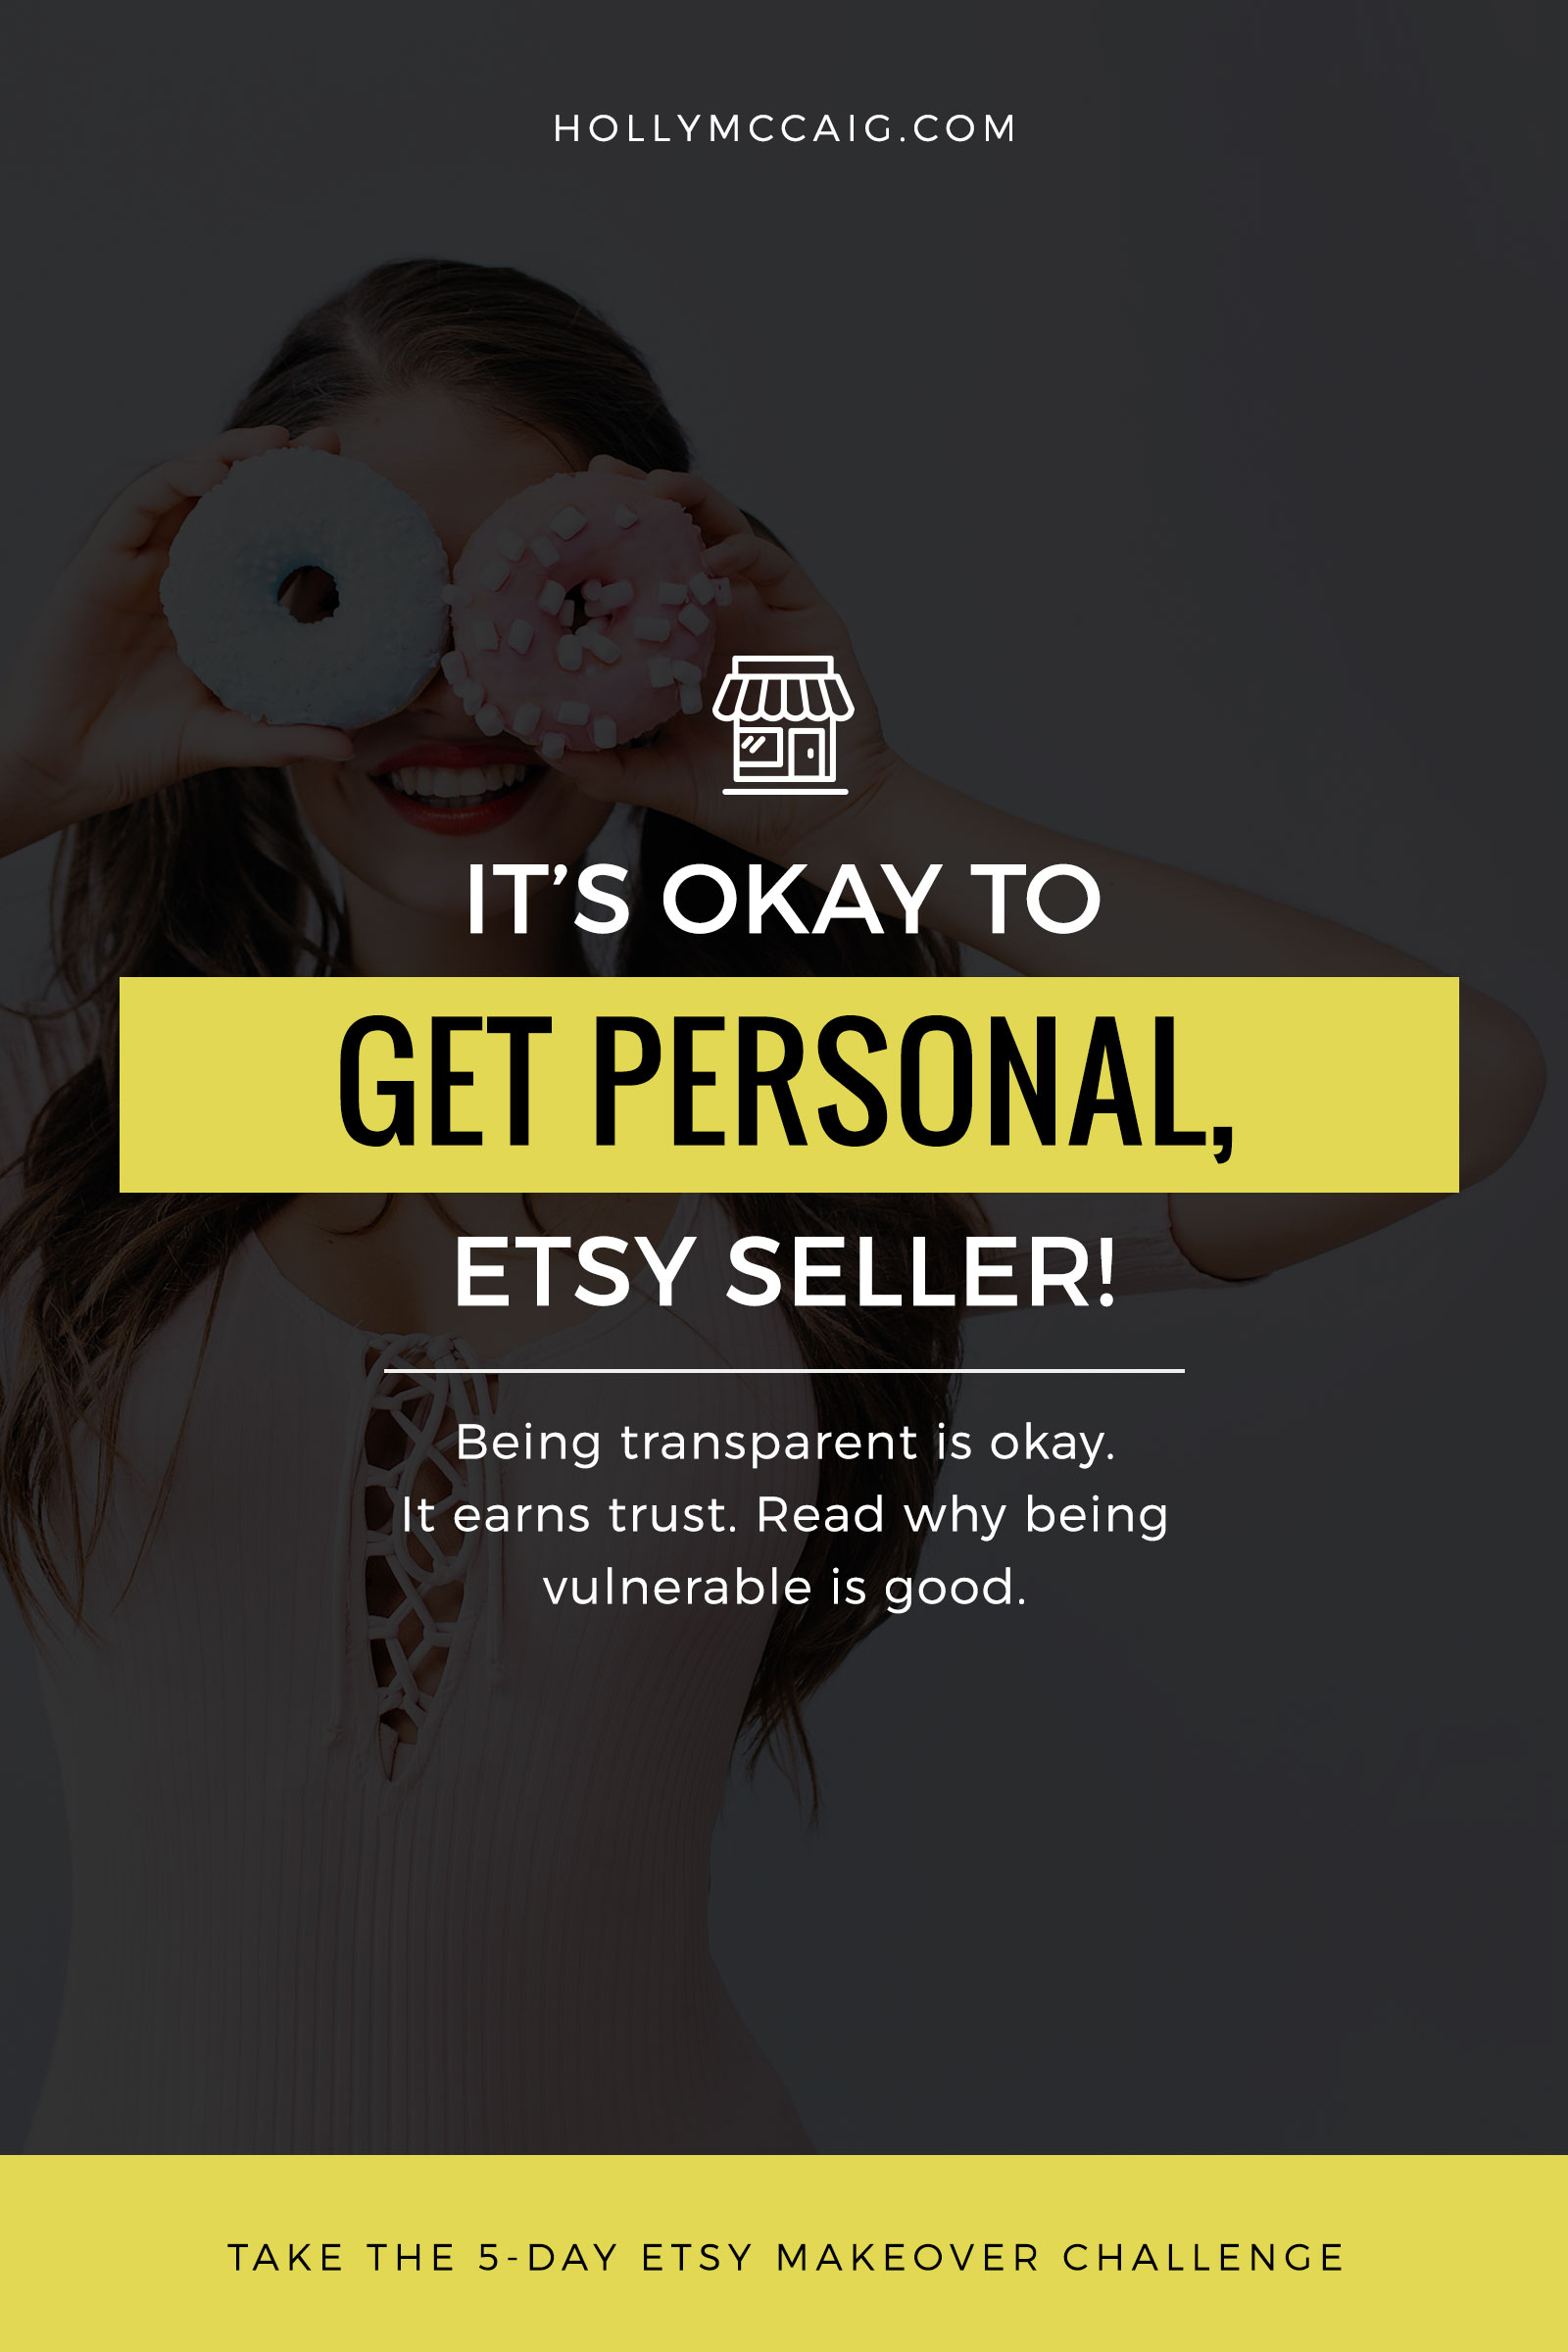 It's okay to get personal, Etsy seller! Show the real you, gain trust and connect with your audience even better.